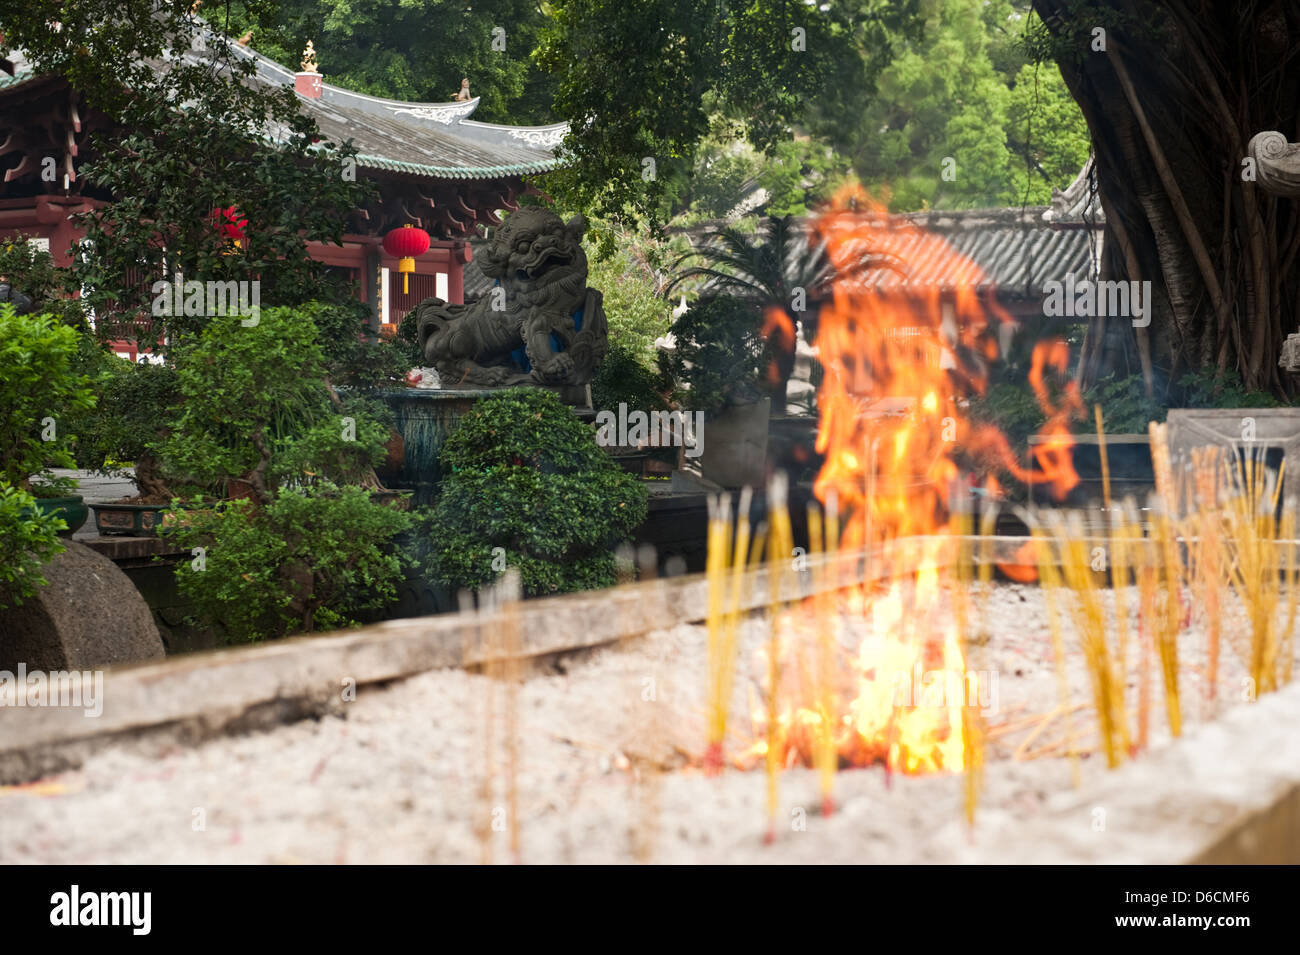 Guangzhou, China, Feuerstaette for incense sticks in the yard of Filial Piety Temple Stock Photo